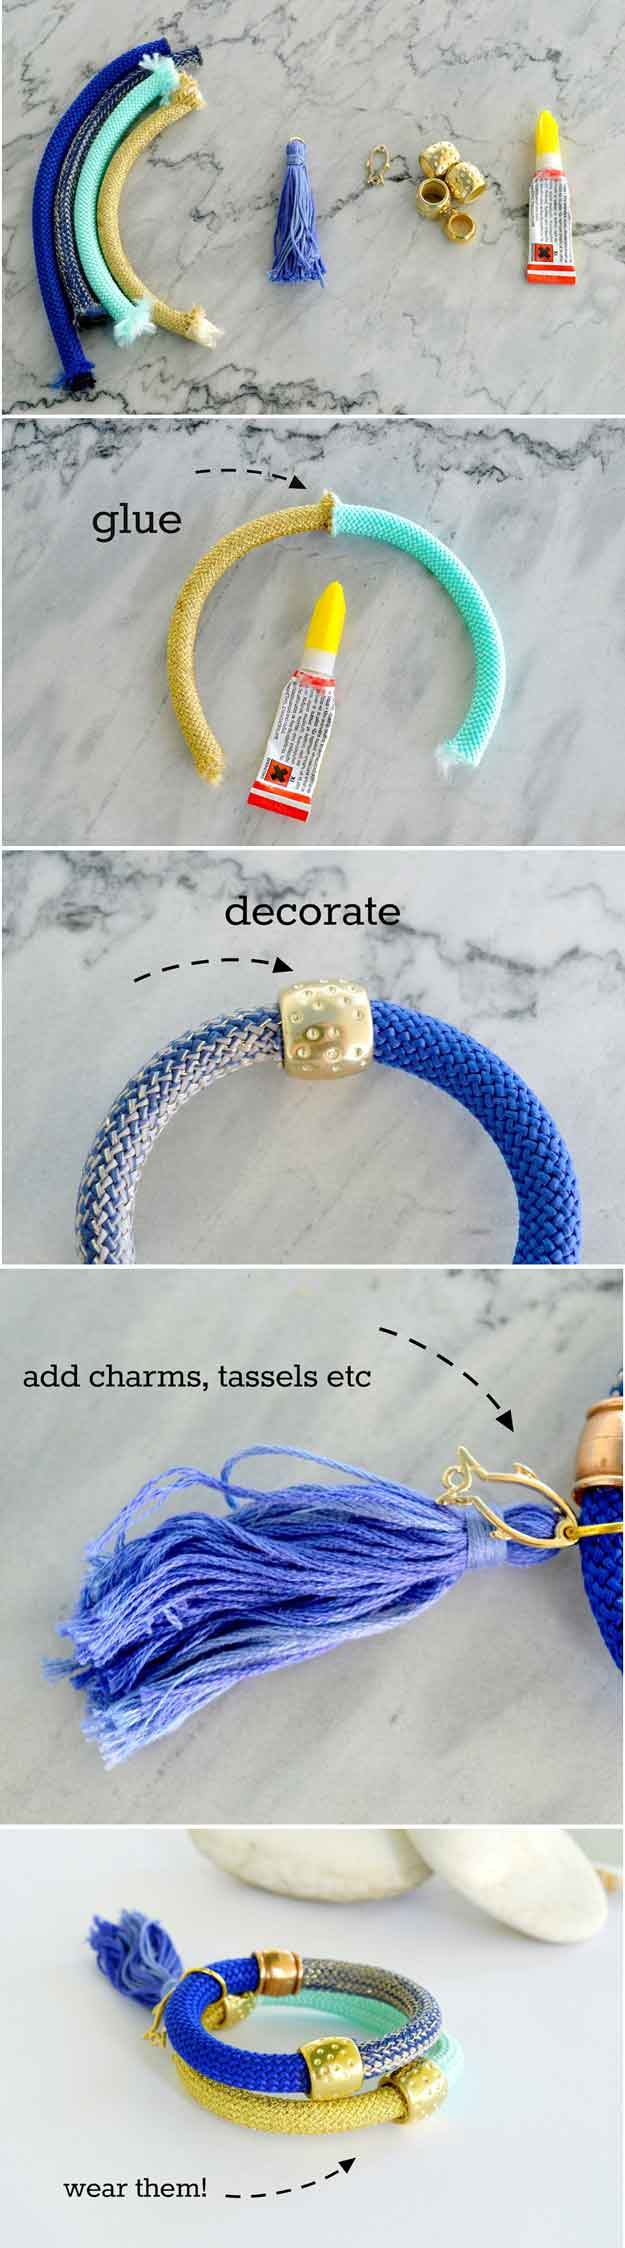 jewelry crafts ideas cheap diy jewelry projects for new craft works 2249